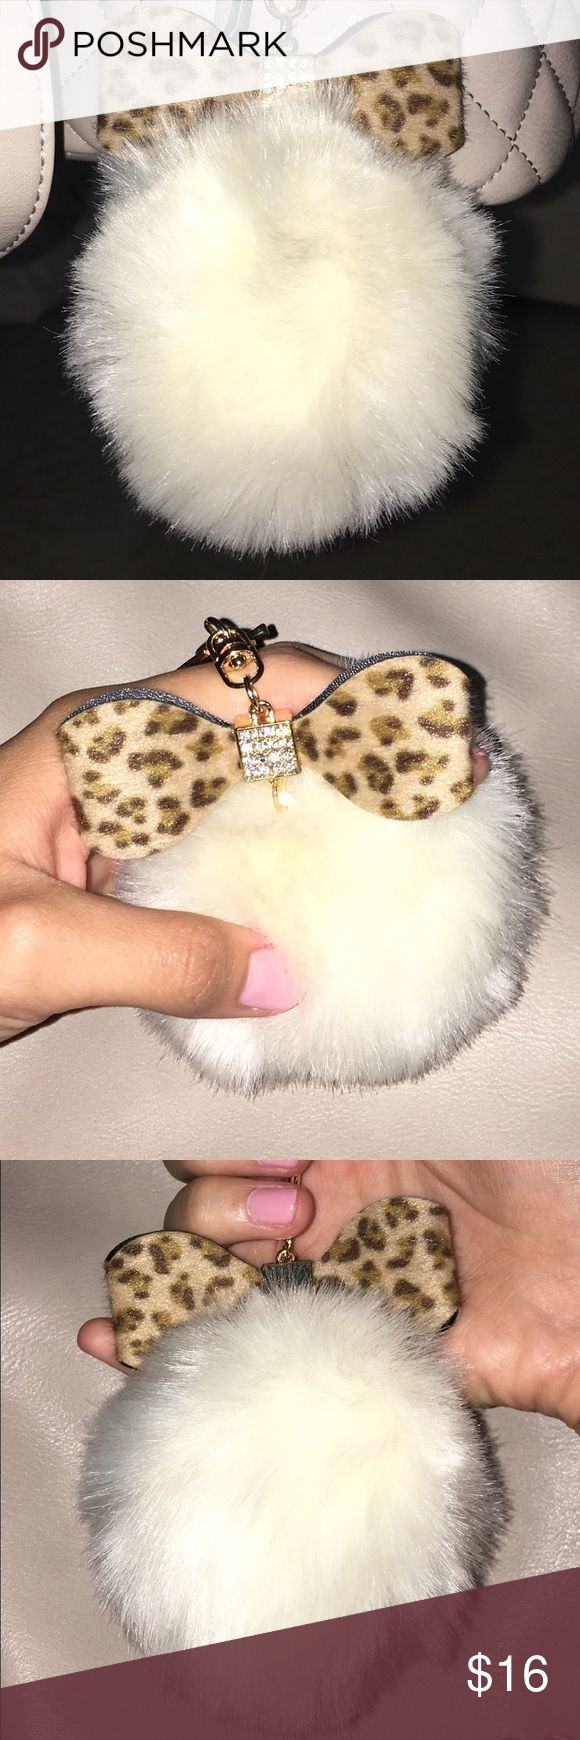 Puff Ball Keychain New and cute puff ball keychain with gold and diamonds with a leopard design. Accessories Key & Card Holders